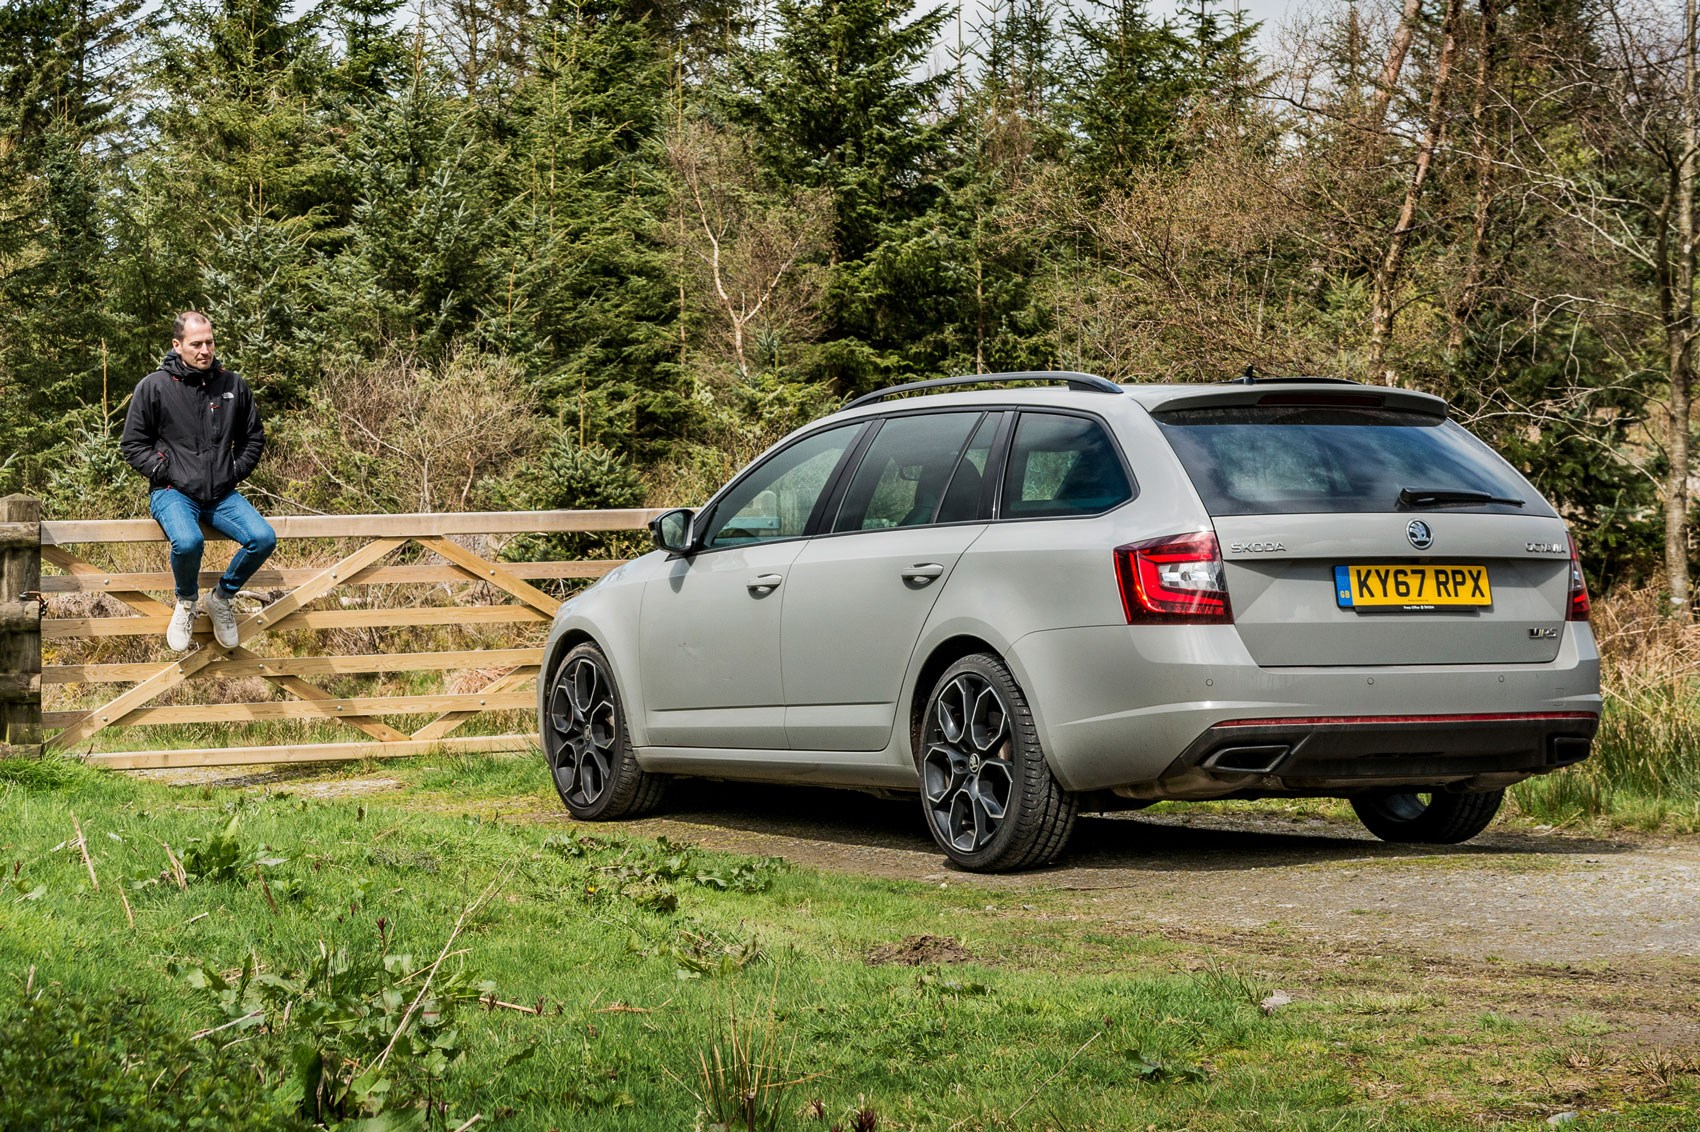 Skoda Octavia Vrs Estate Skoda Octavia Vrs 245 Estate Long Term Test Review Car